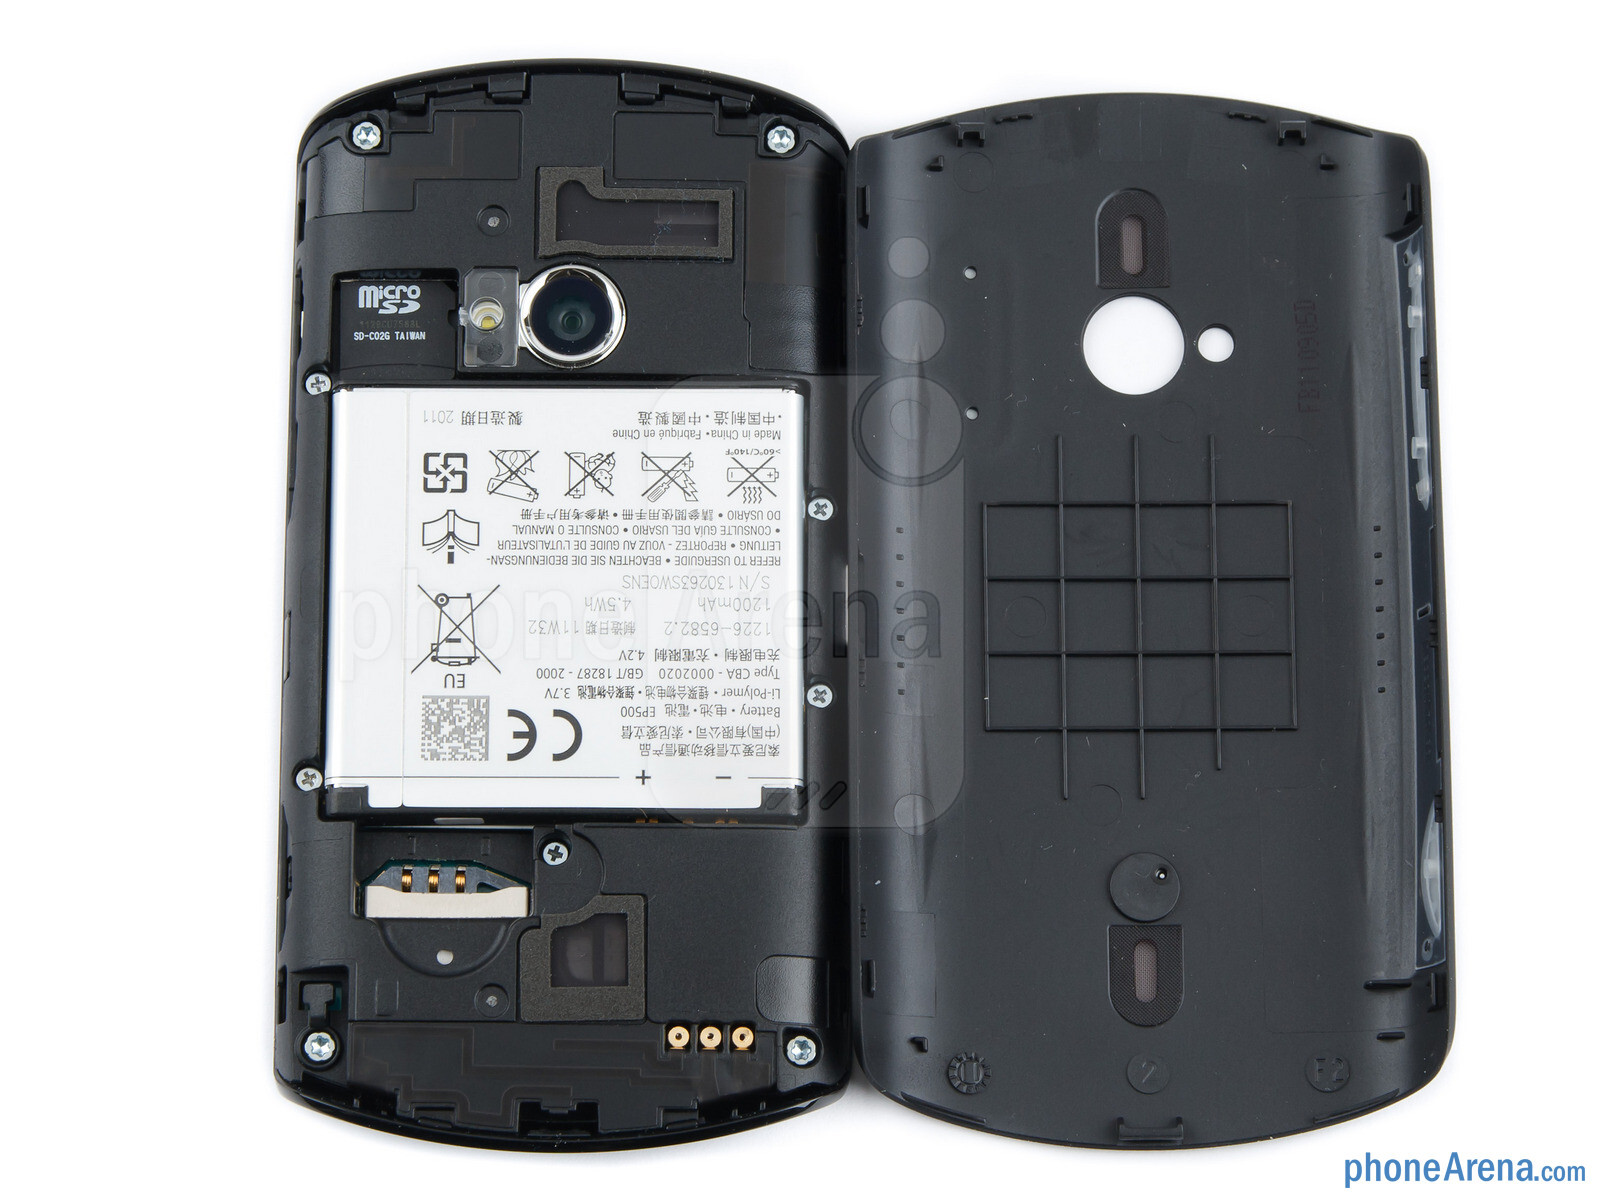 Sony Ericsson Live with Walkman Review Design 04